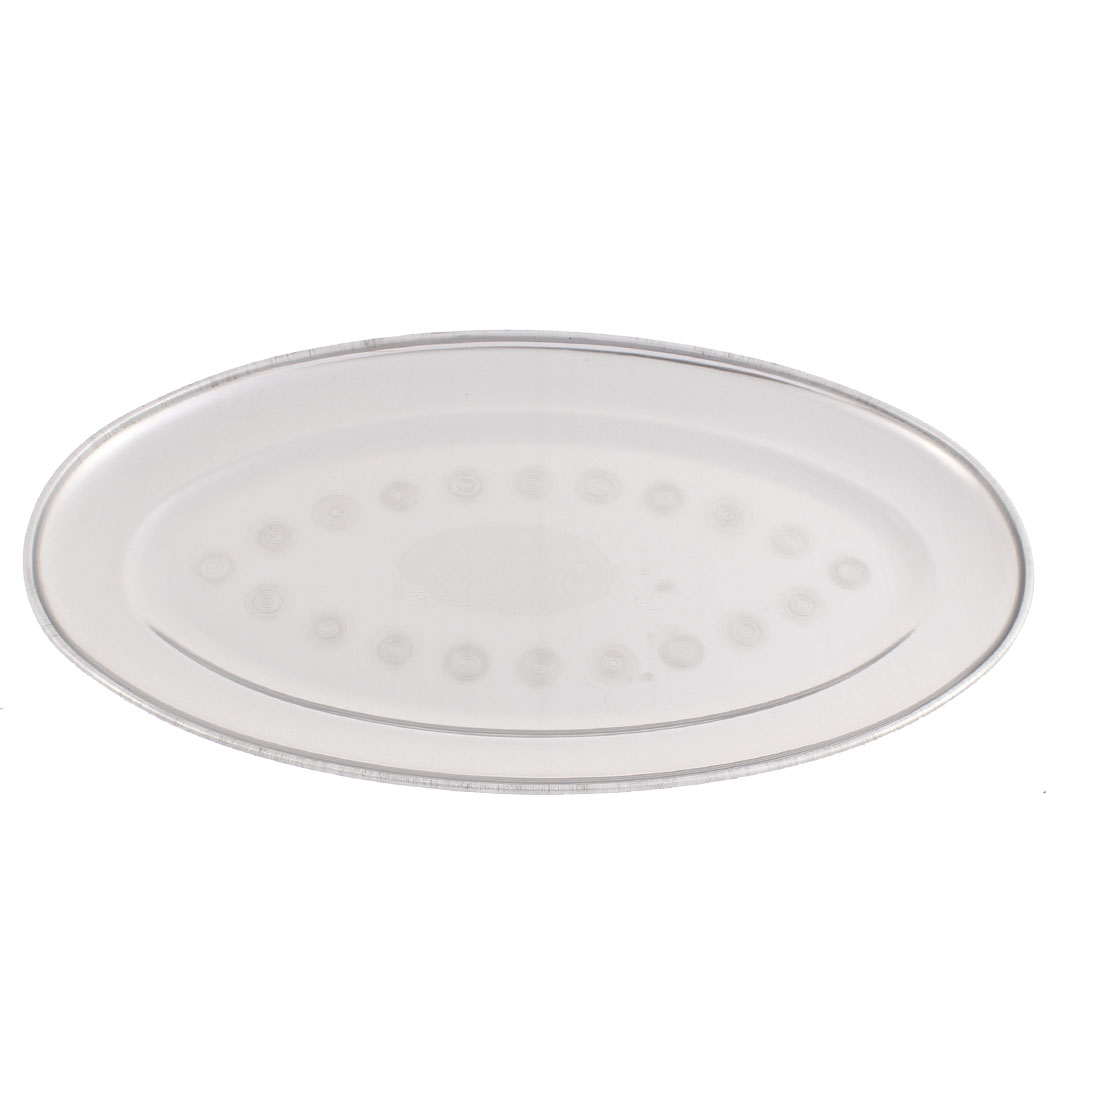 "Stainless Steel Oval Shape Dinner Dish Plate Tray 11"" Length"